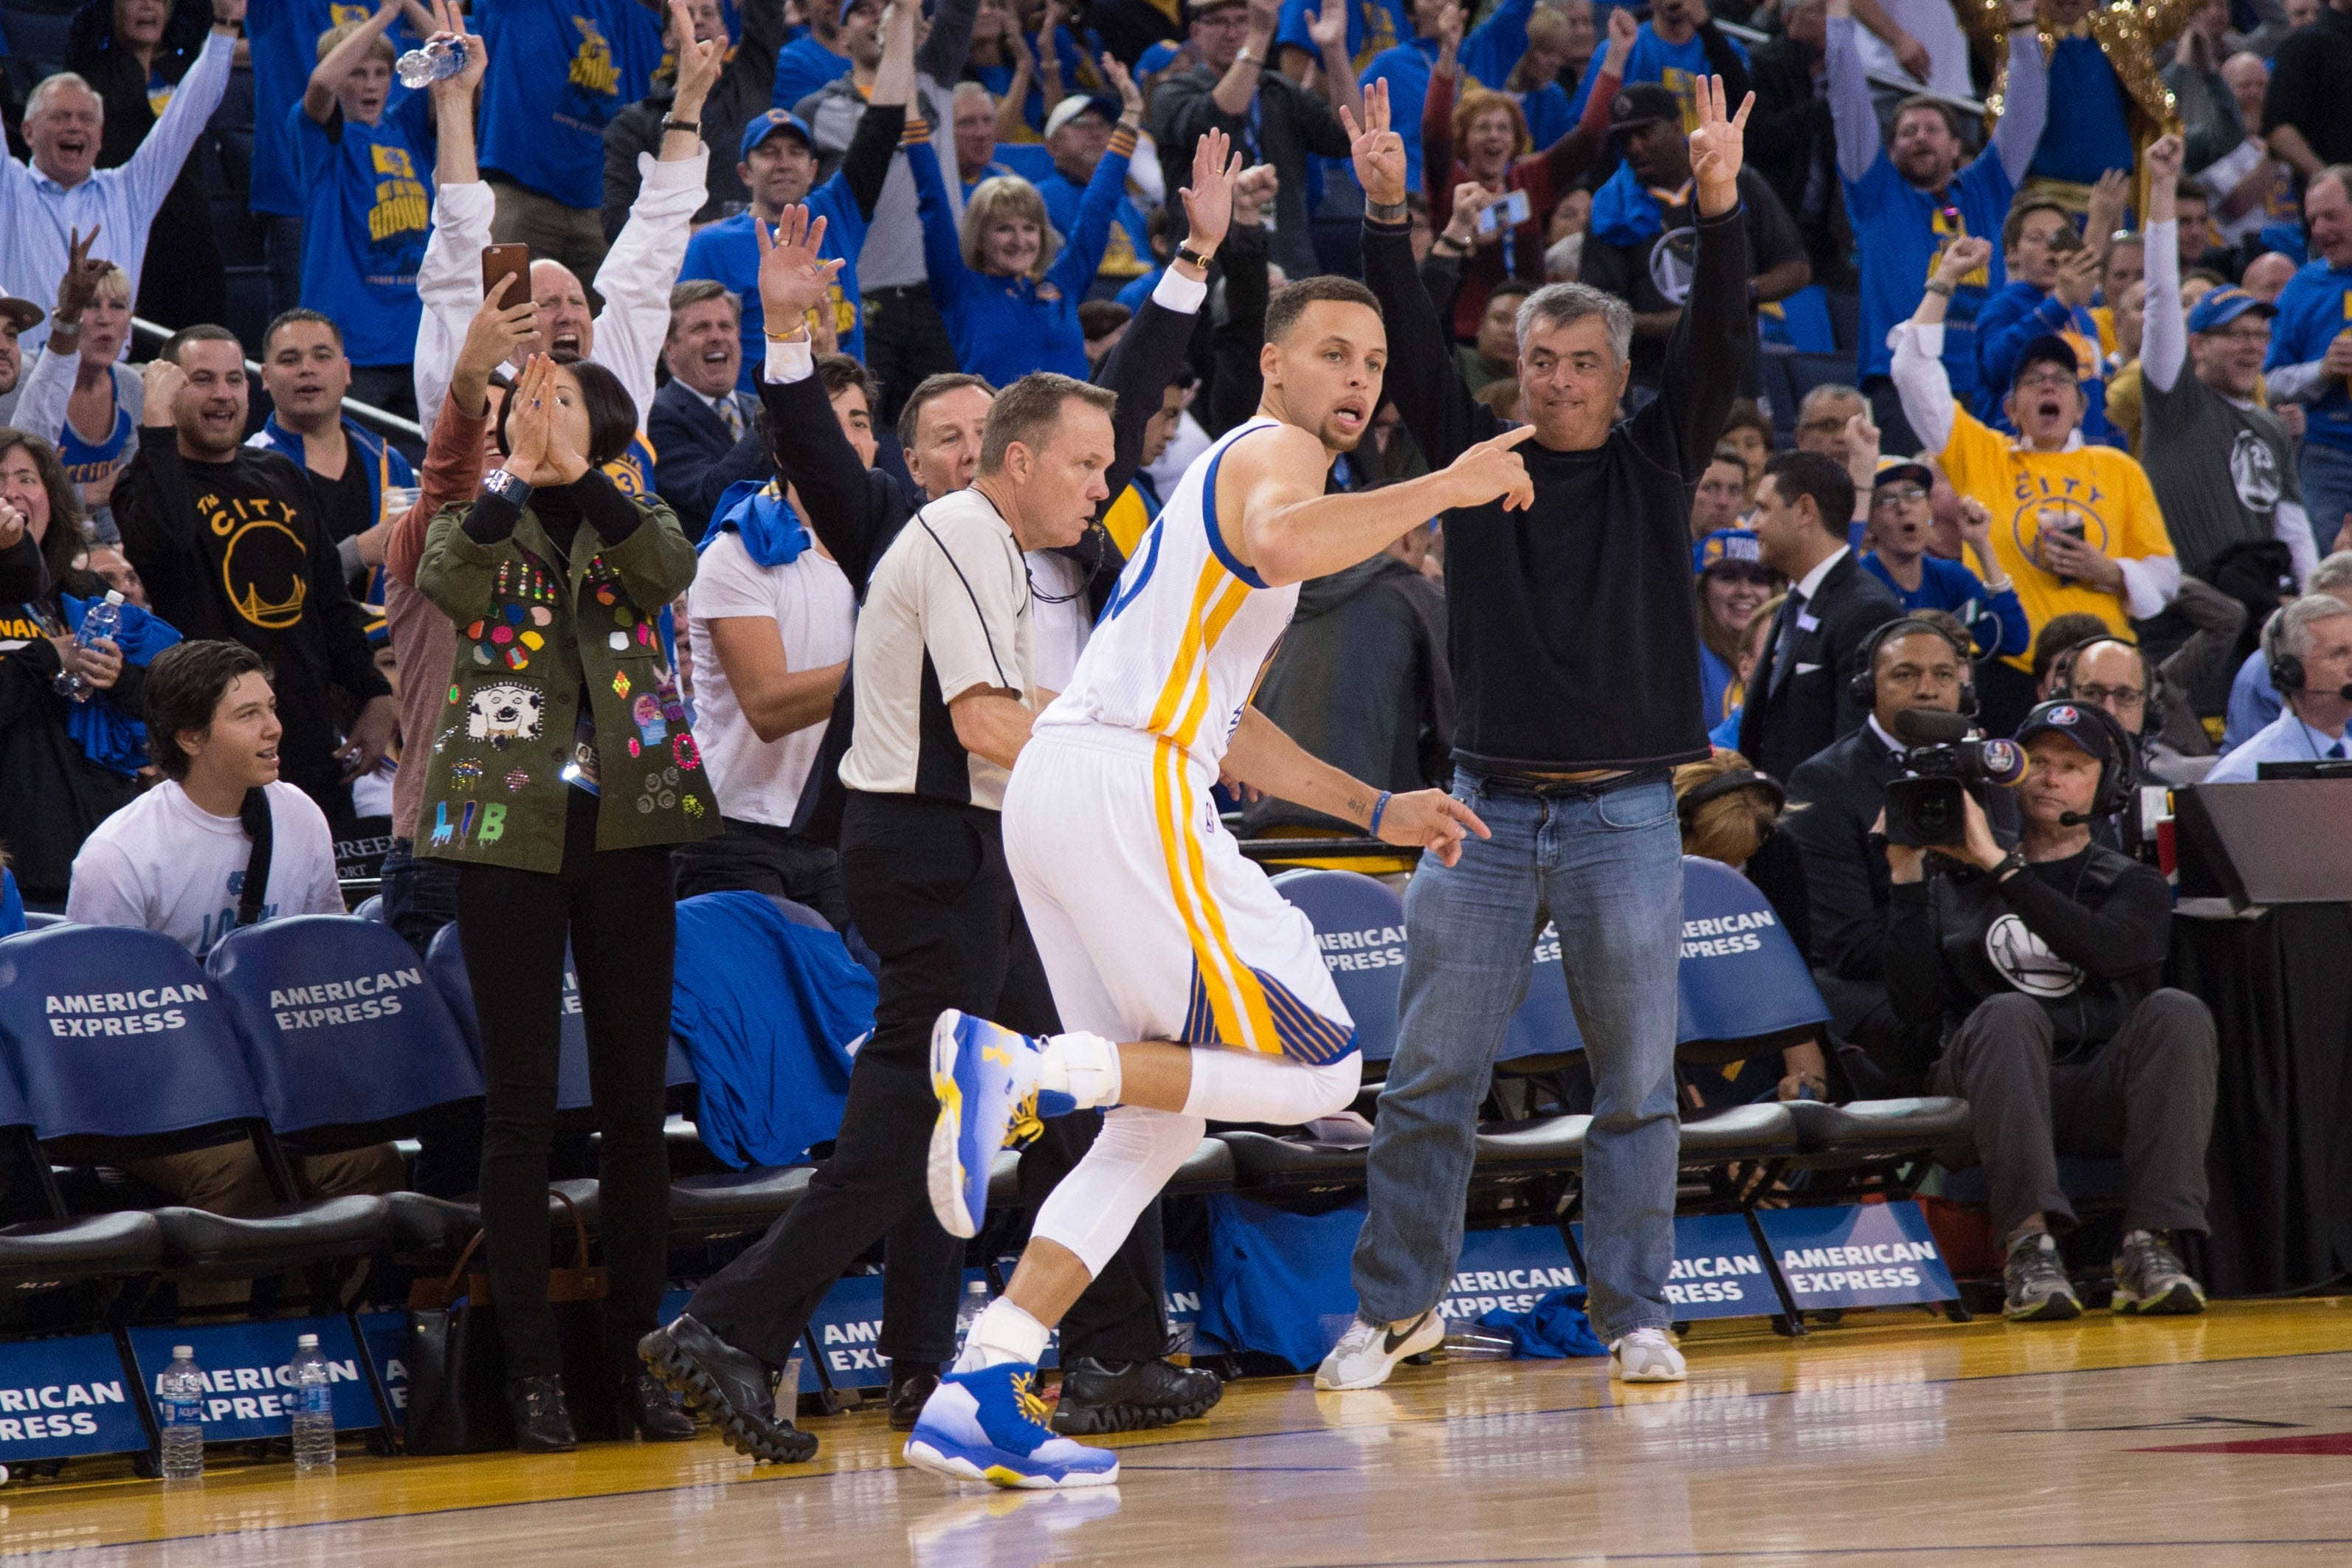 Amick: Stephen Curry pushing the limits of greatness in record season